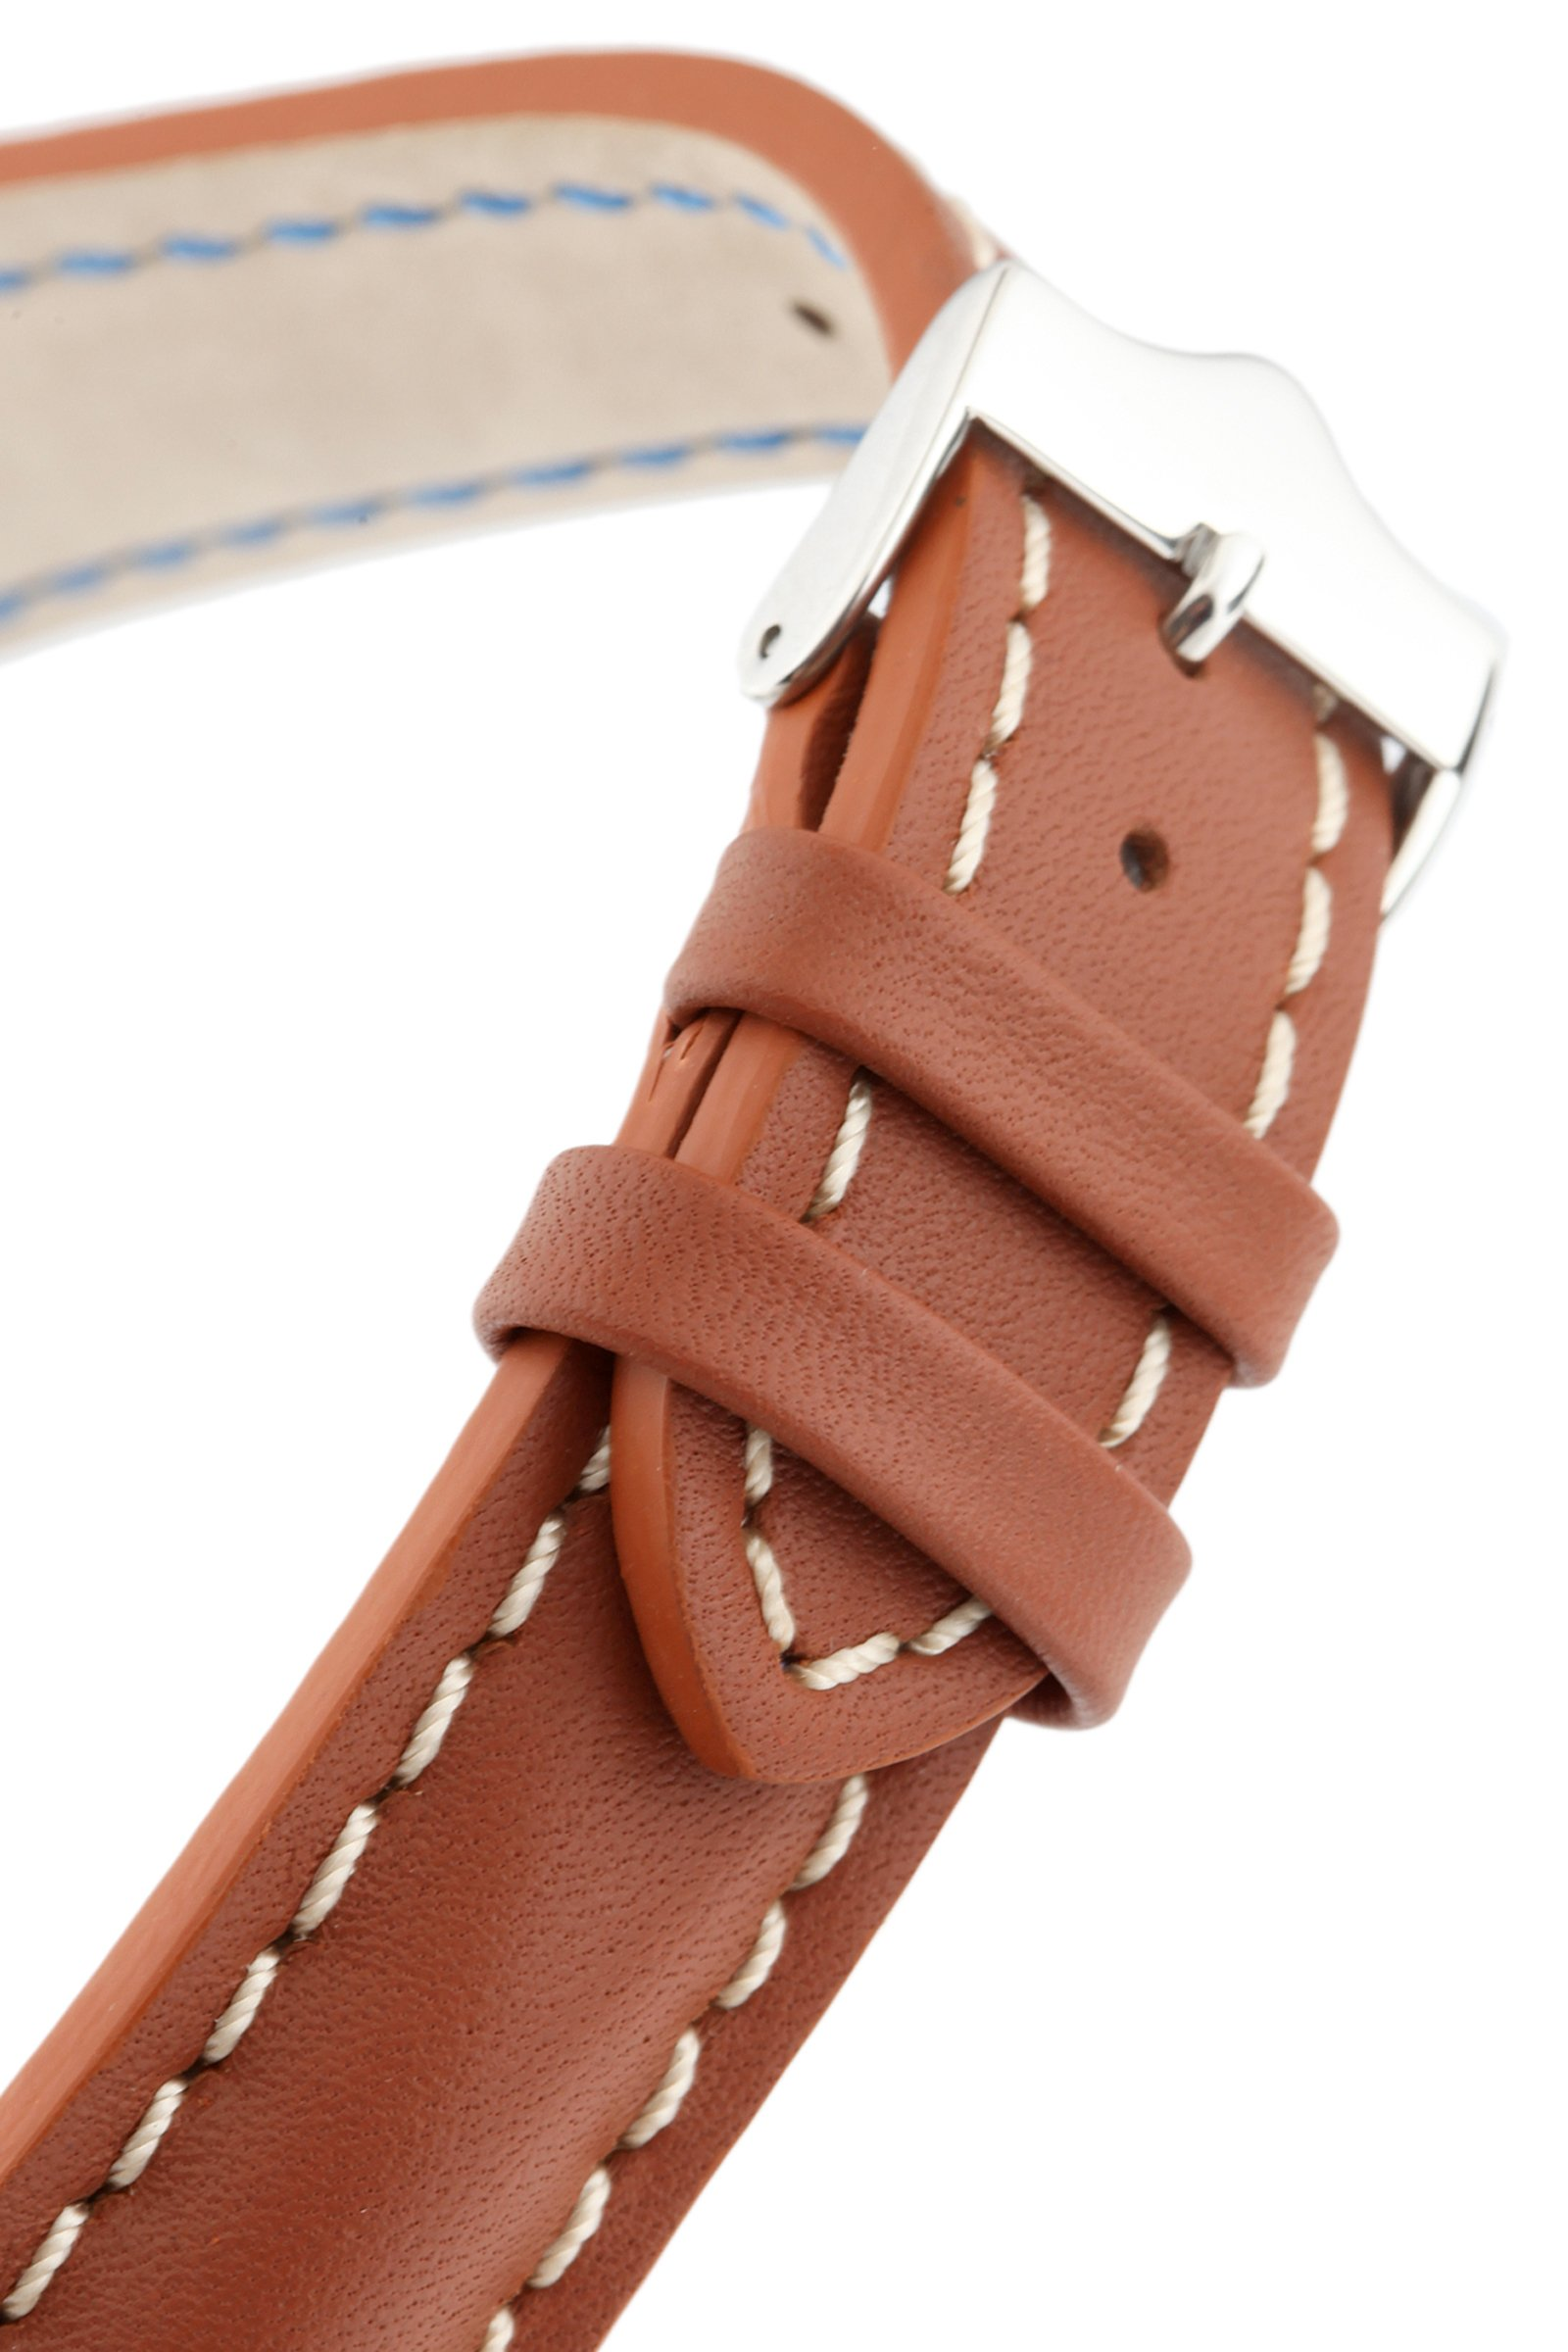 Signature Racing Wood 20 mm watch band. Replacement watch strap. Genuine Leather. Silver buckle by Signature (Image #5)